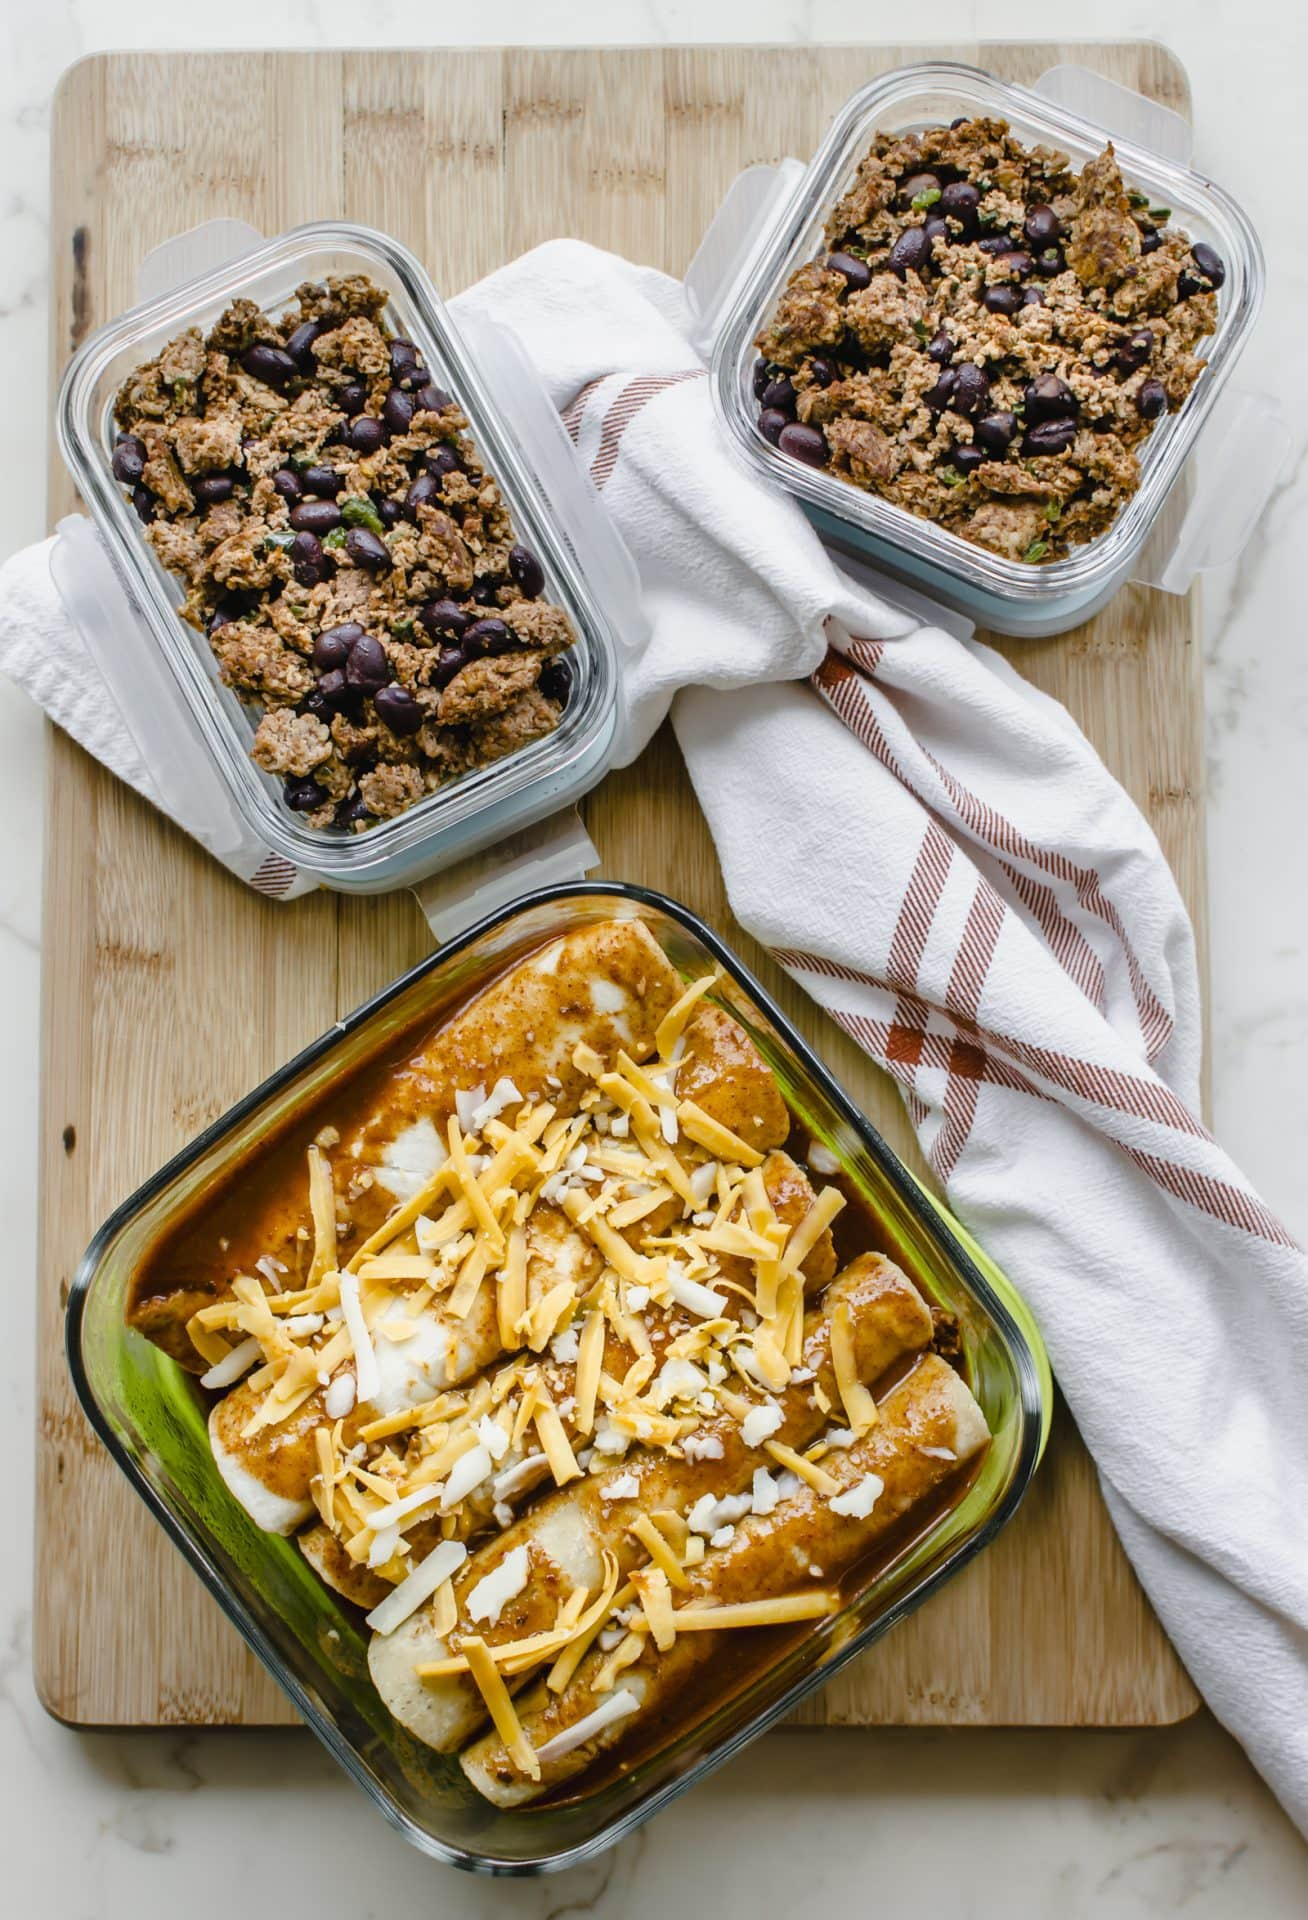 A freezer container filled with enchiladas and two meal prep containers with enchilada filling.